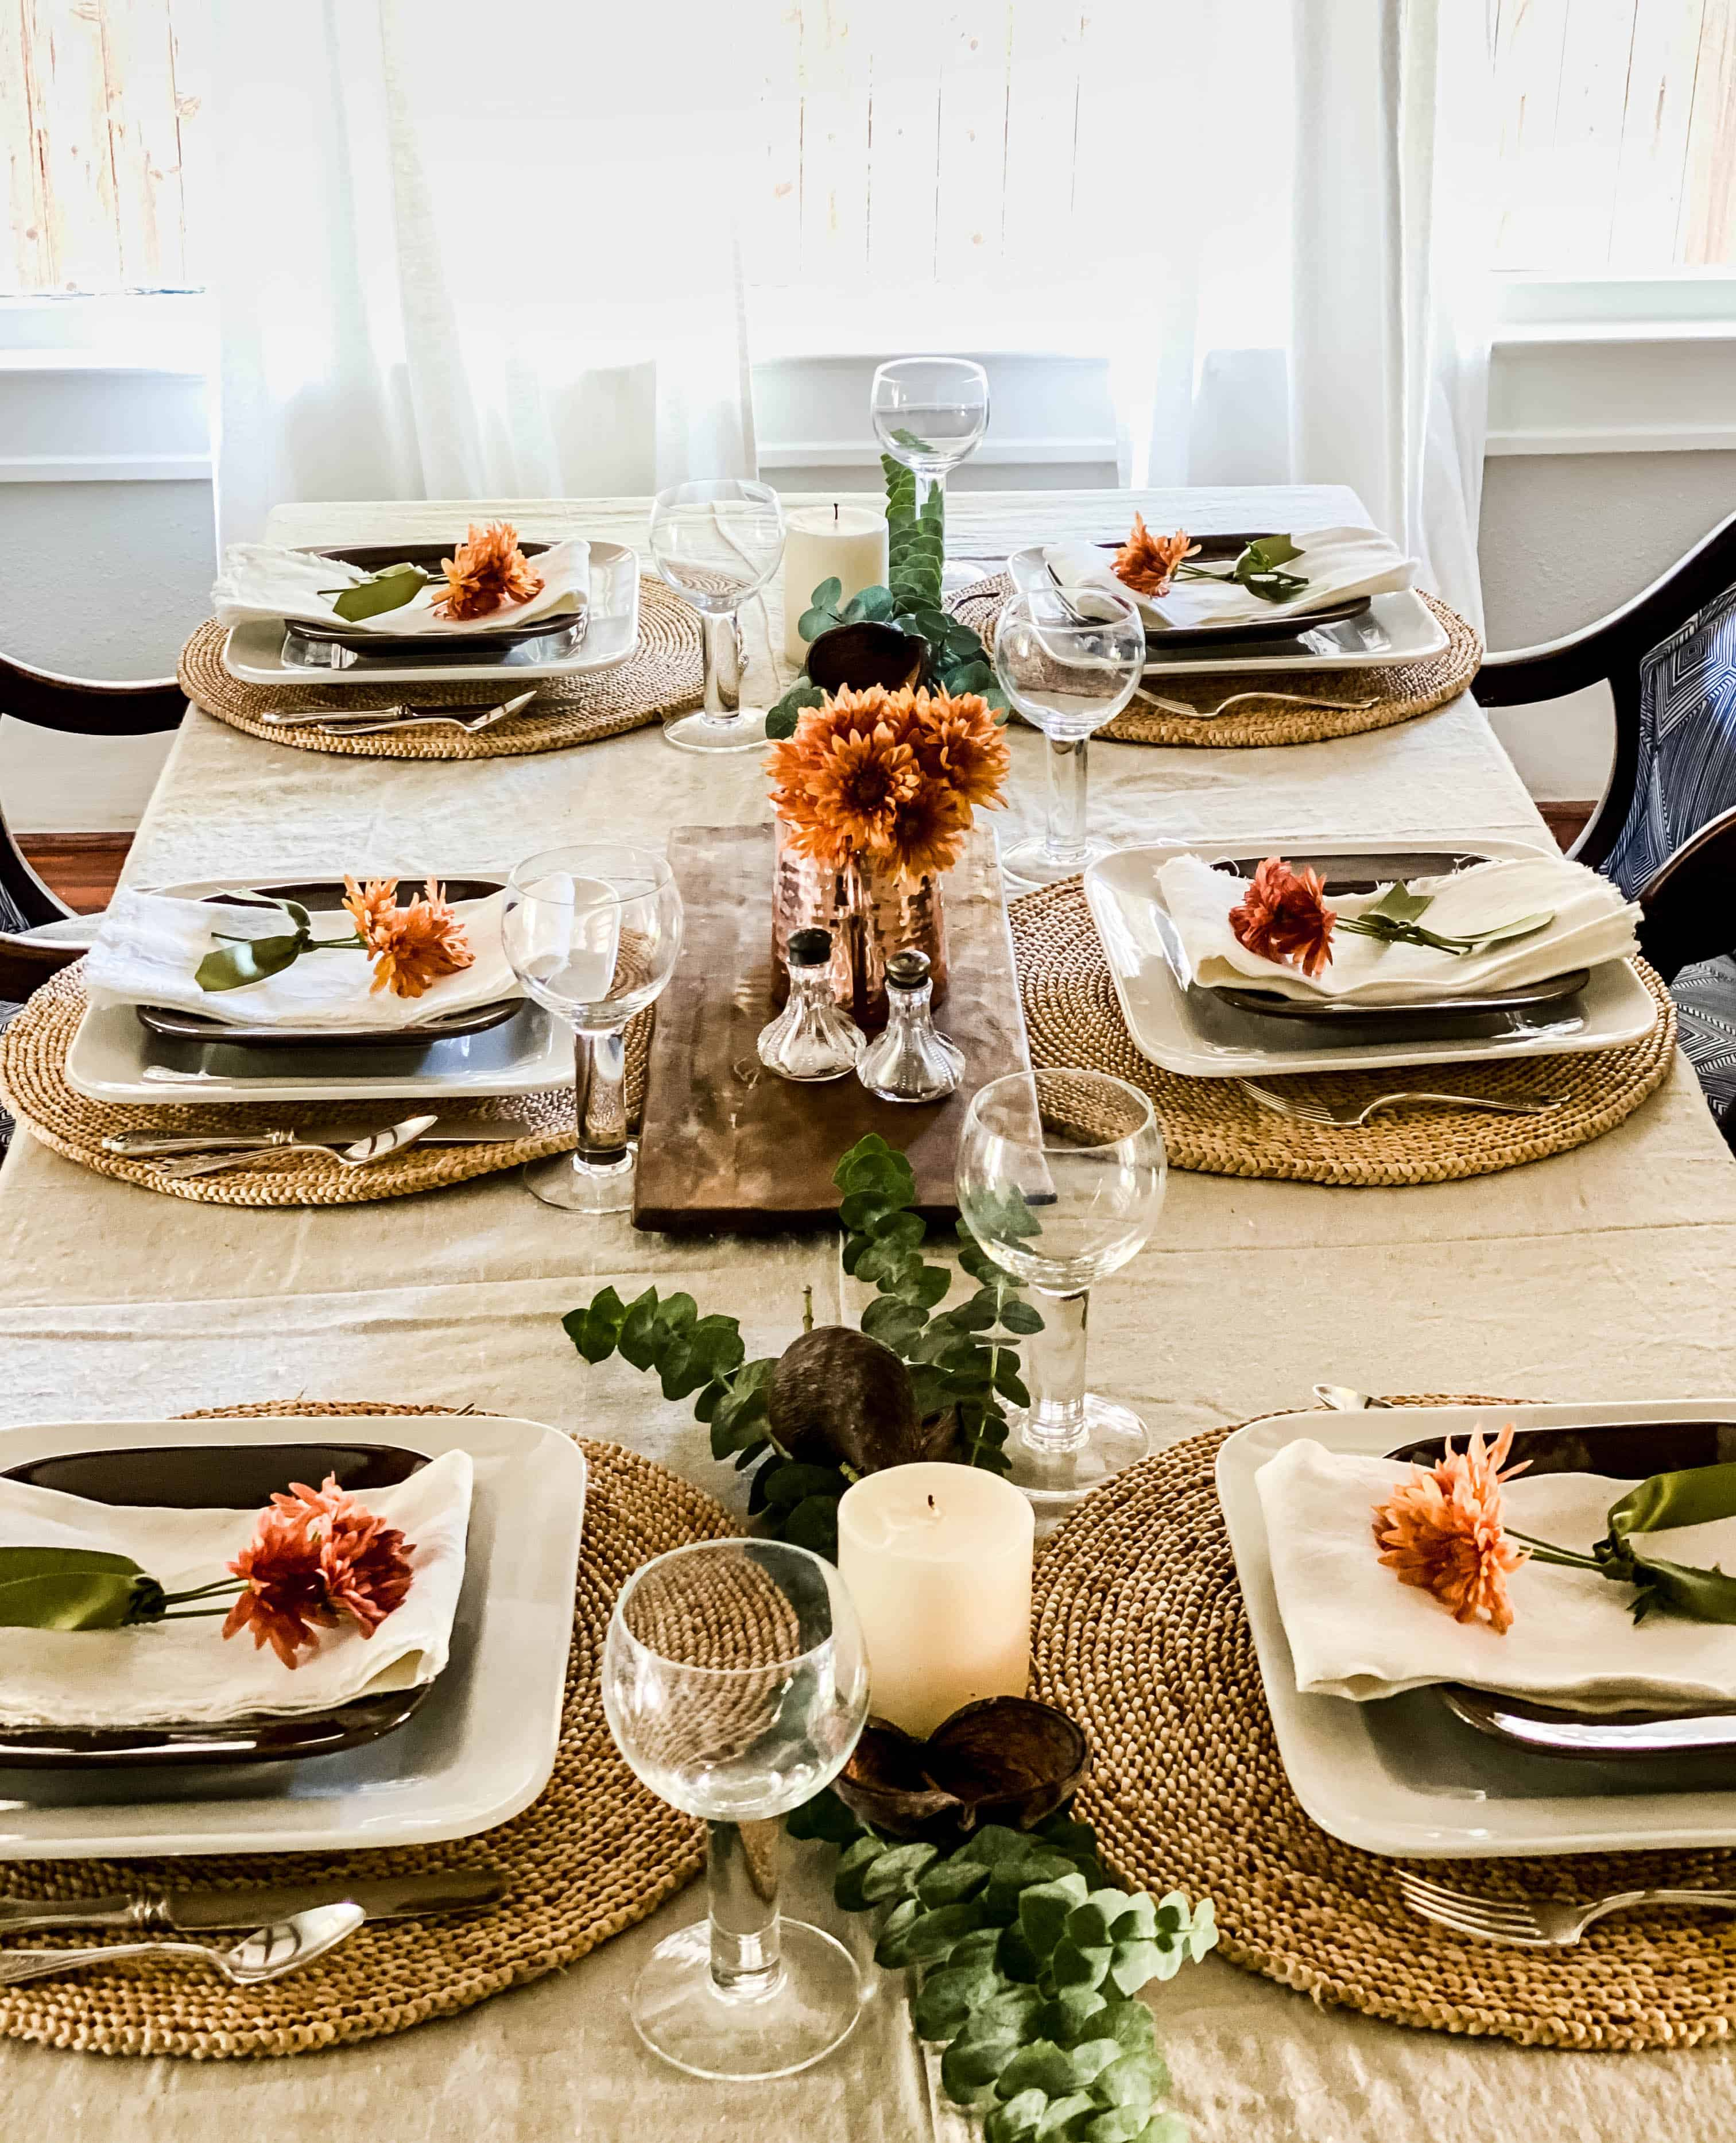 Thanksgiving table linens